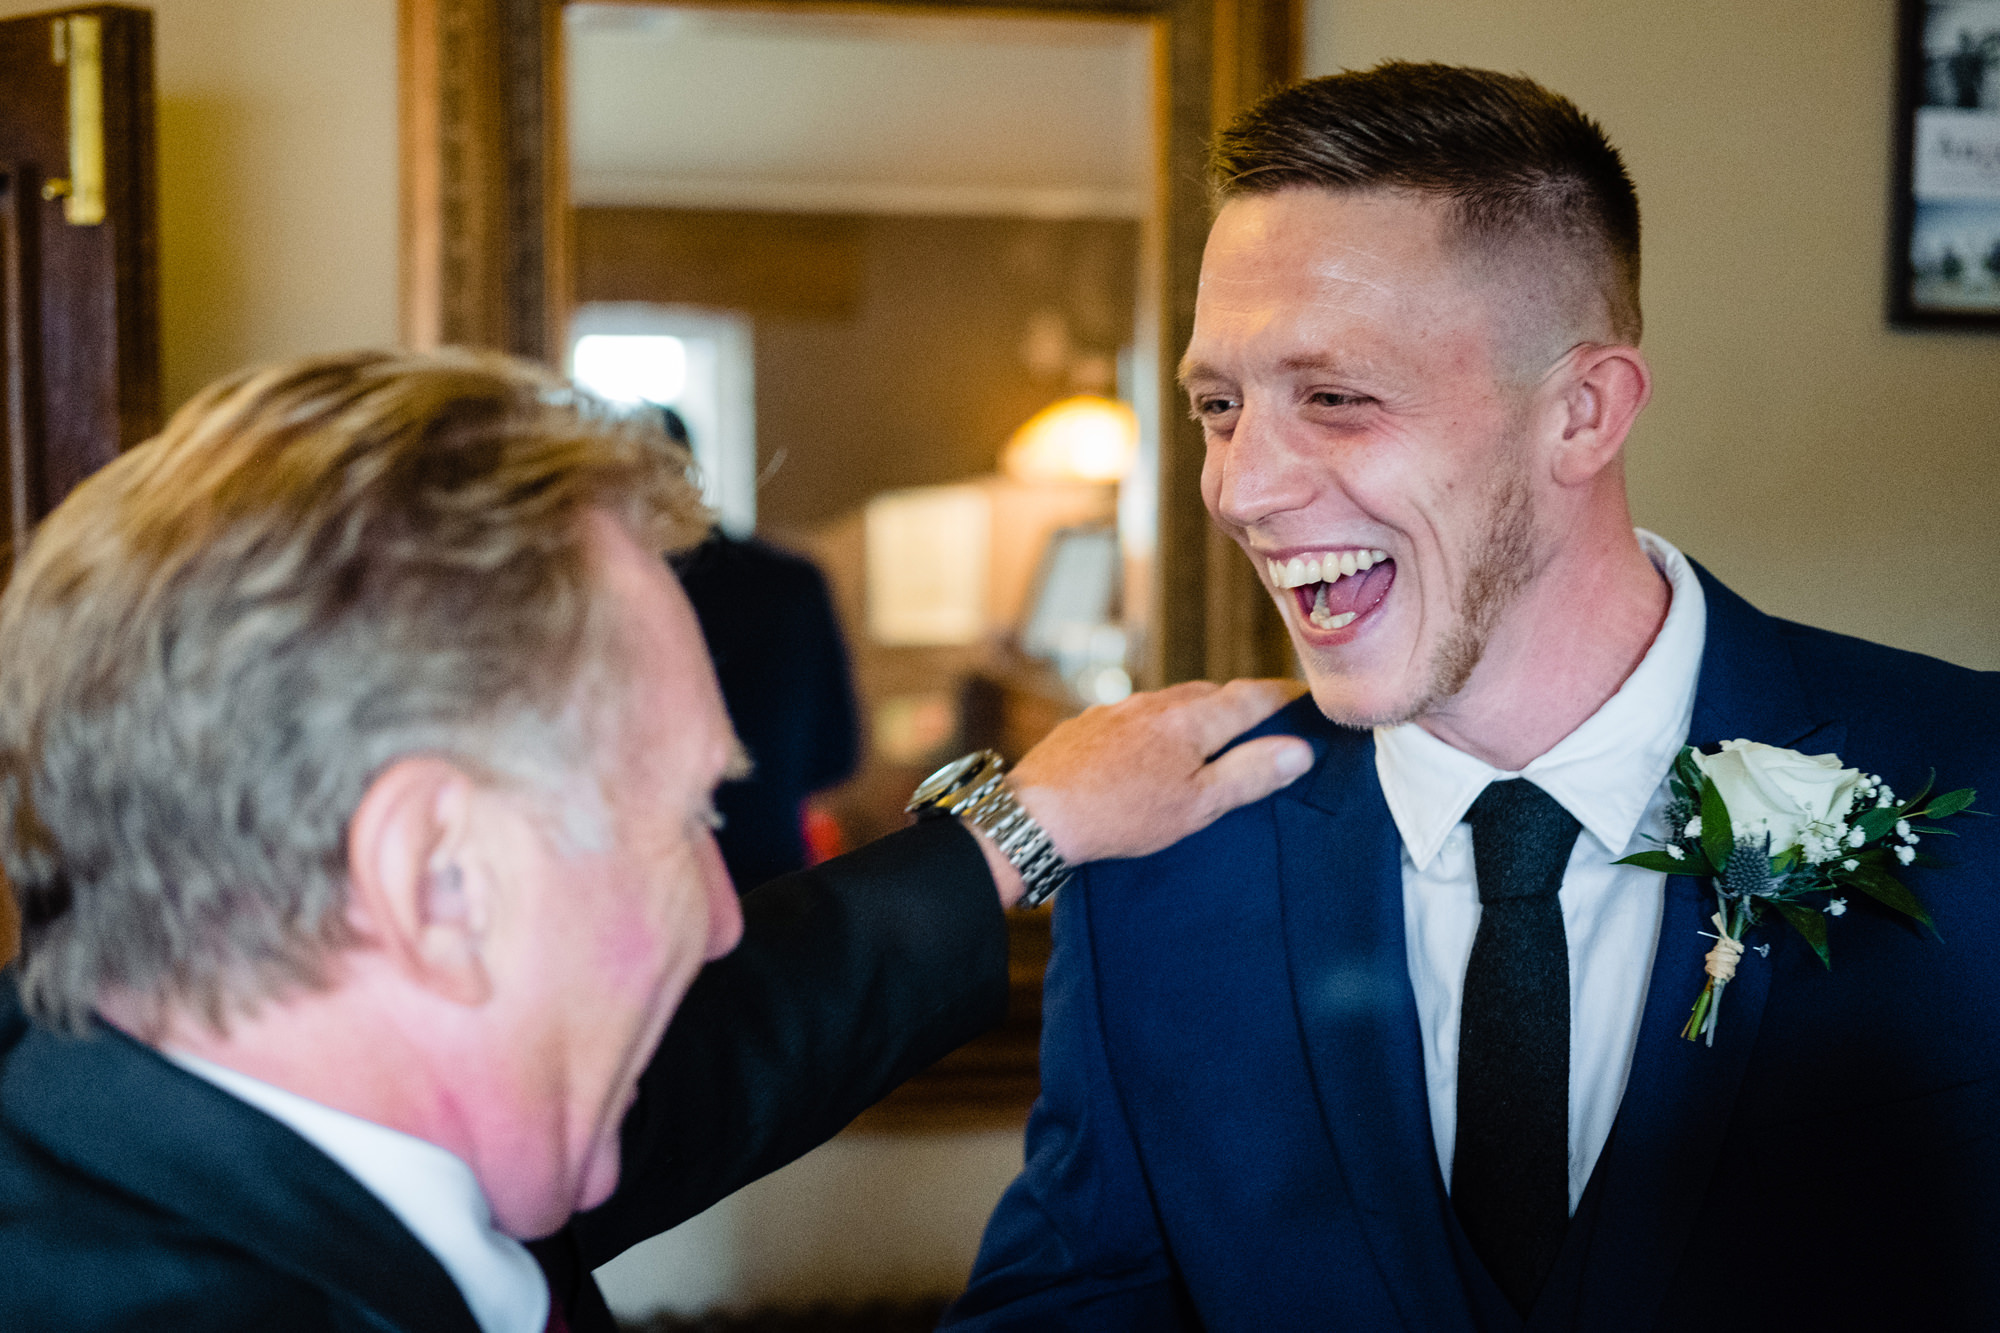 a grinning groom being congratulated by a guest.